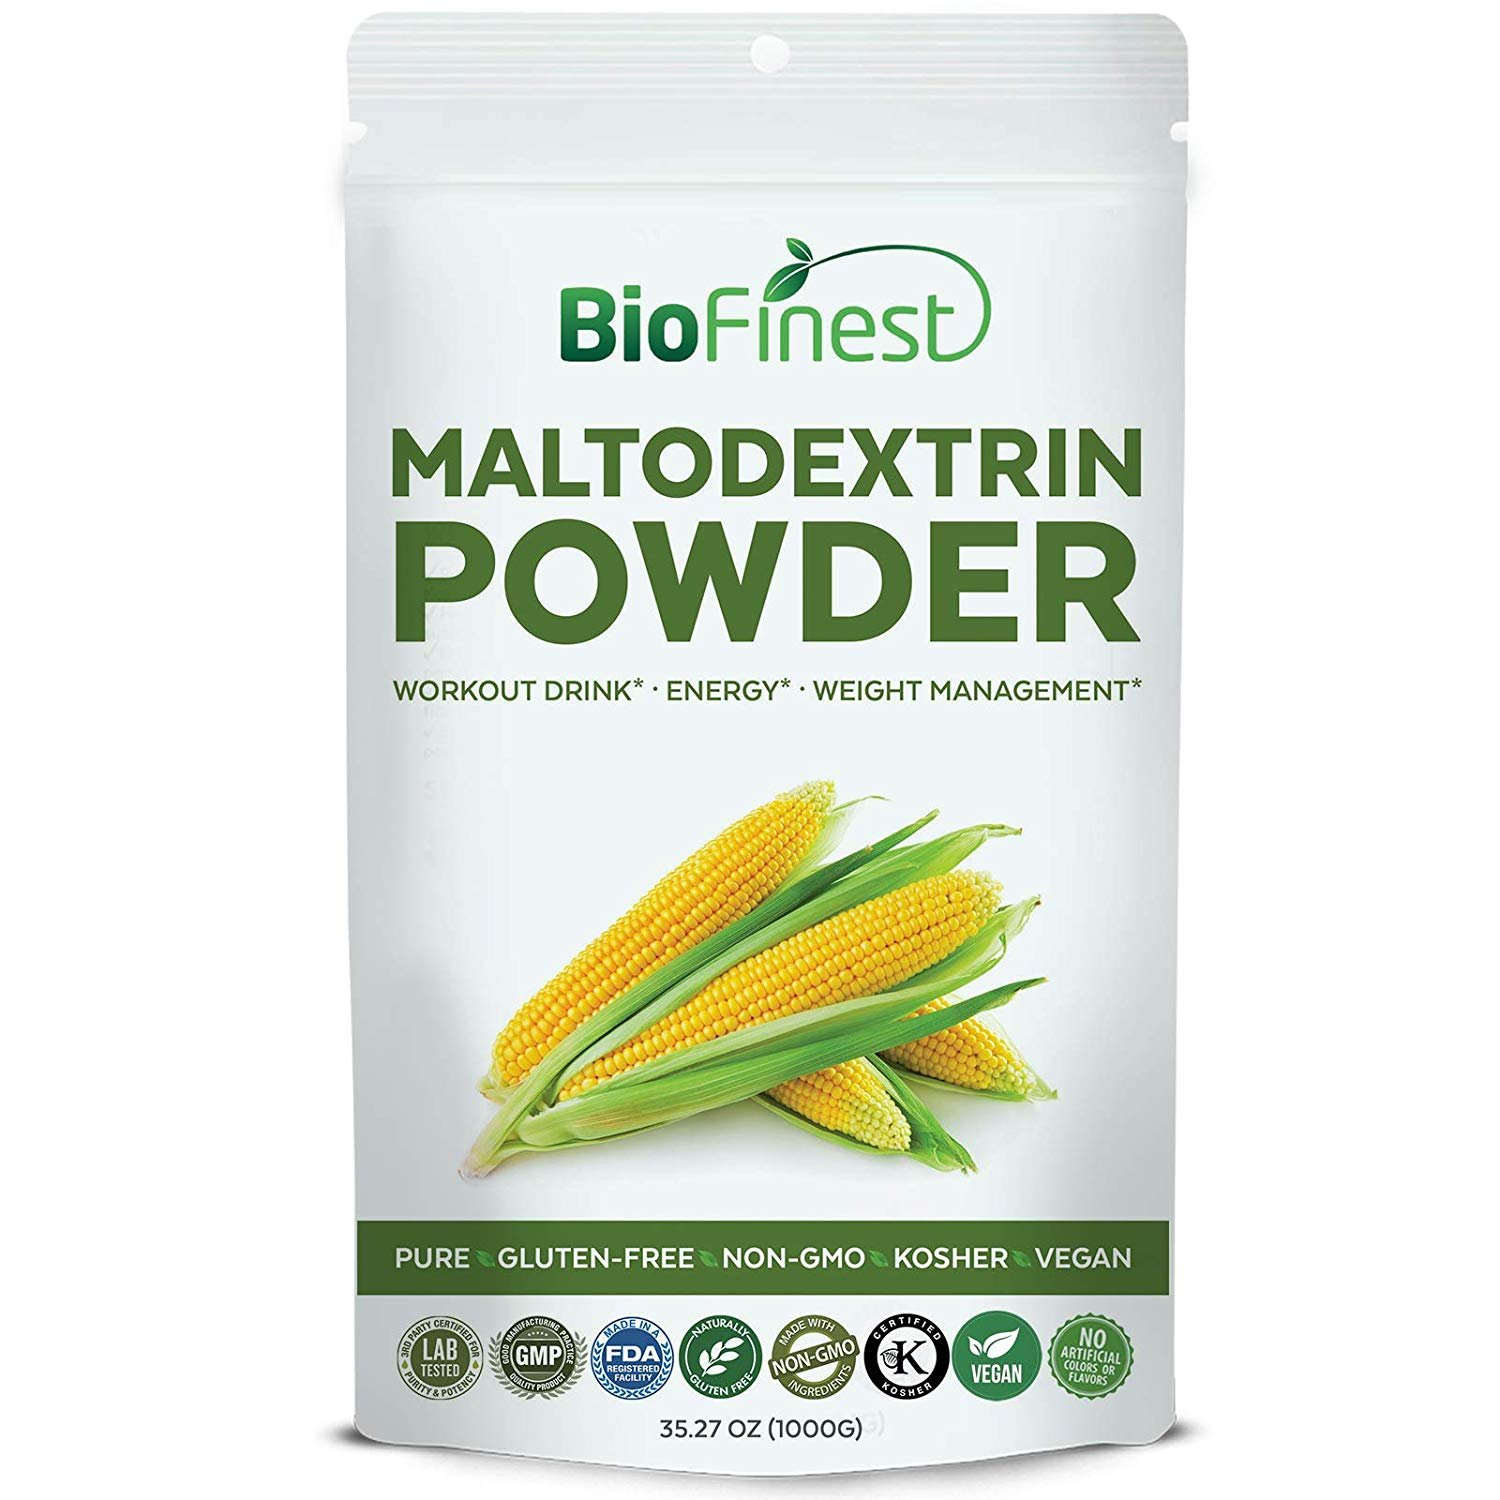 Biofinest Maltodextrin Powder - Pure Gluten-Free Non-GMO Kosher Vegan Friendly - Supplement for Pre-Workout, Weight Management, Energy, Skin Health (1000g)